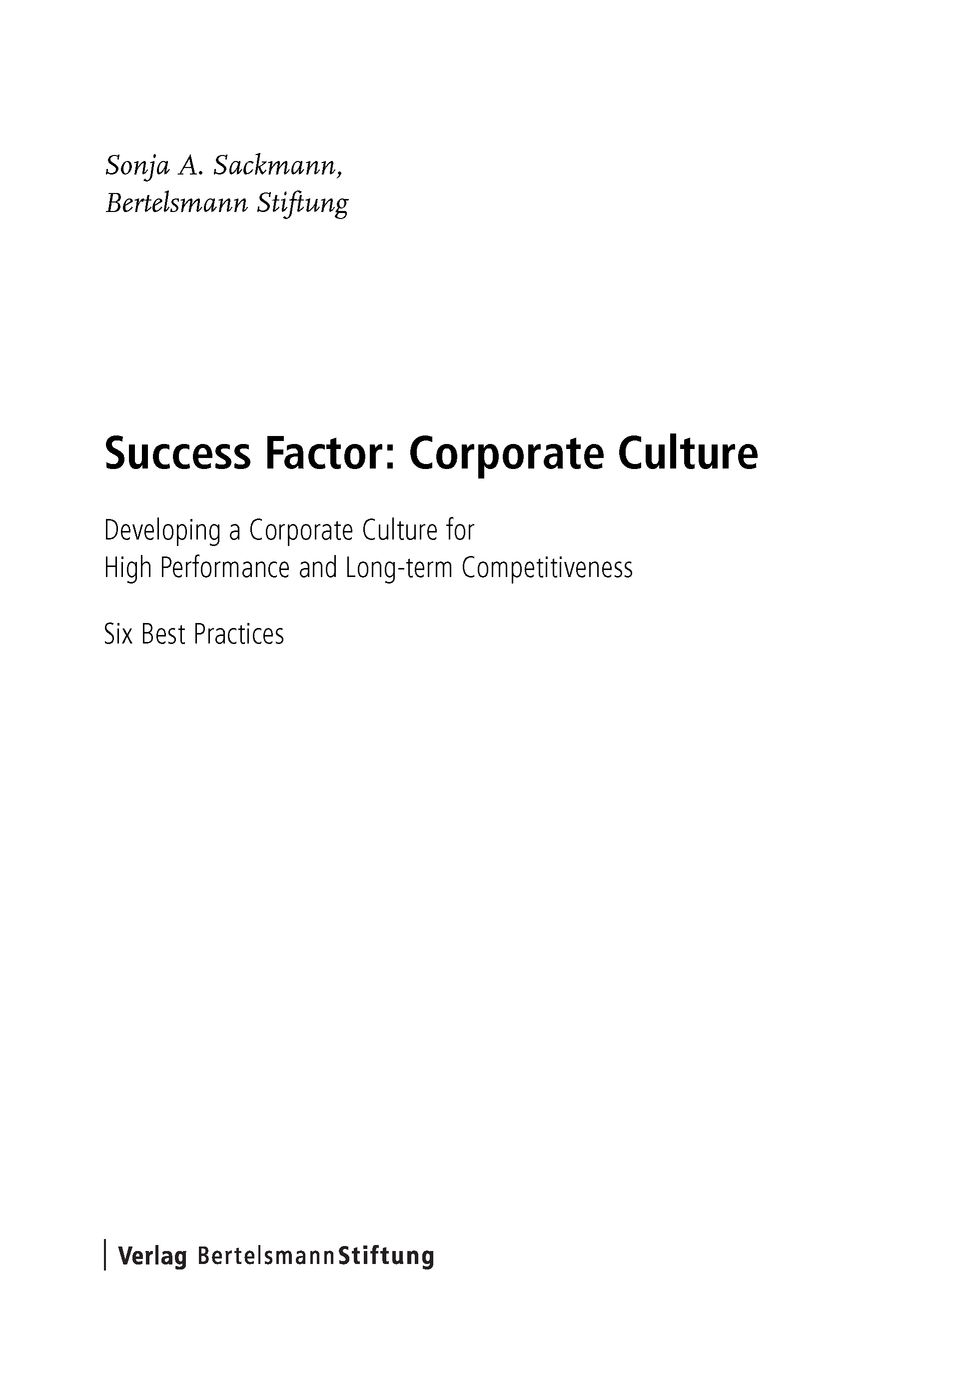 leadership the determinant of corporate culture This paper theorizes how leadership affects erp implementation by fostering the desired organizational culture we contend that erp implementation success is positively related with organizational culture along the dimensions of learning and development, participative decision making, power sharing, support and collaboration, and tolerance for risk and conflicts.